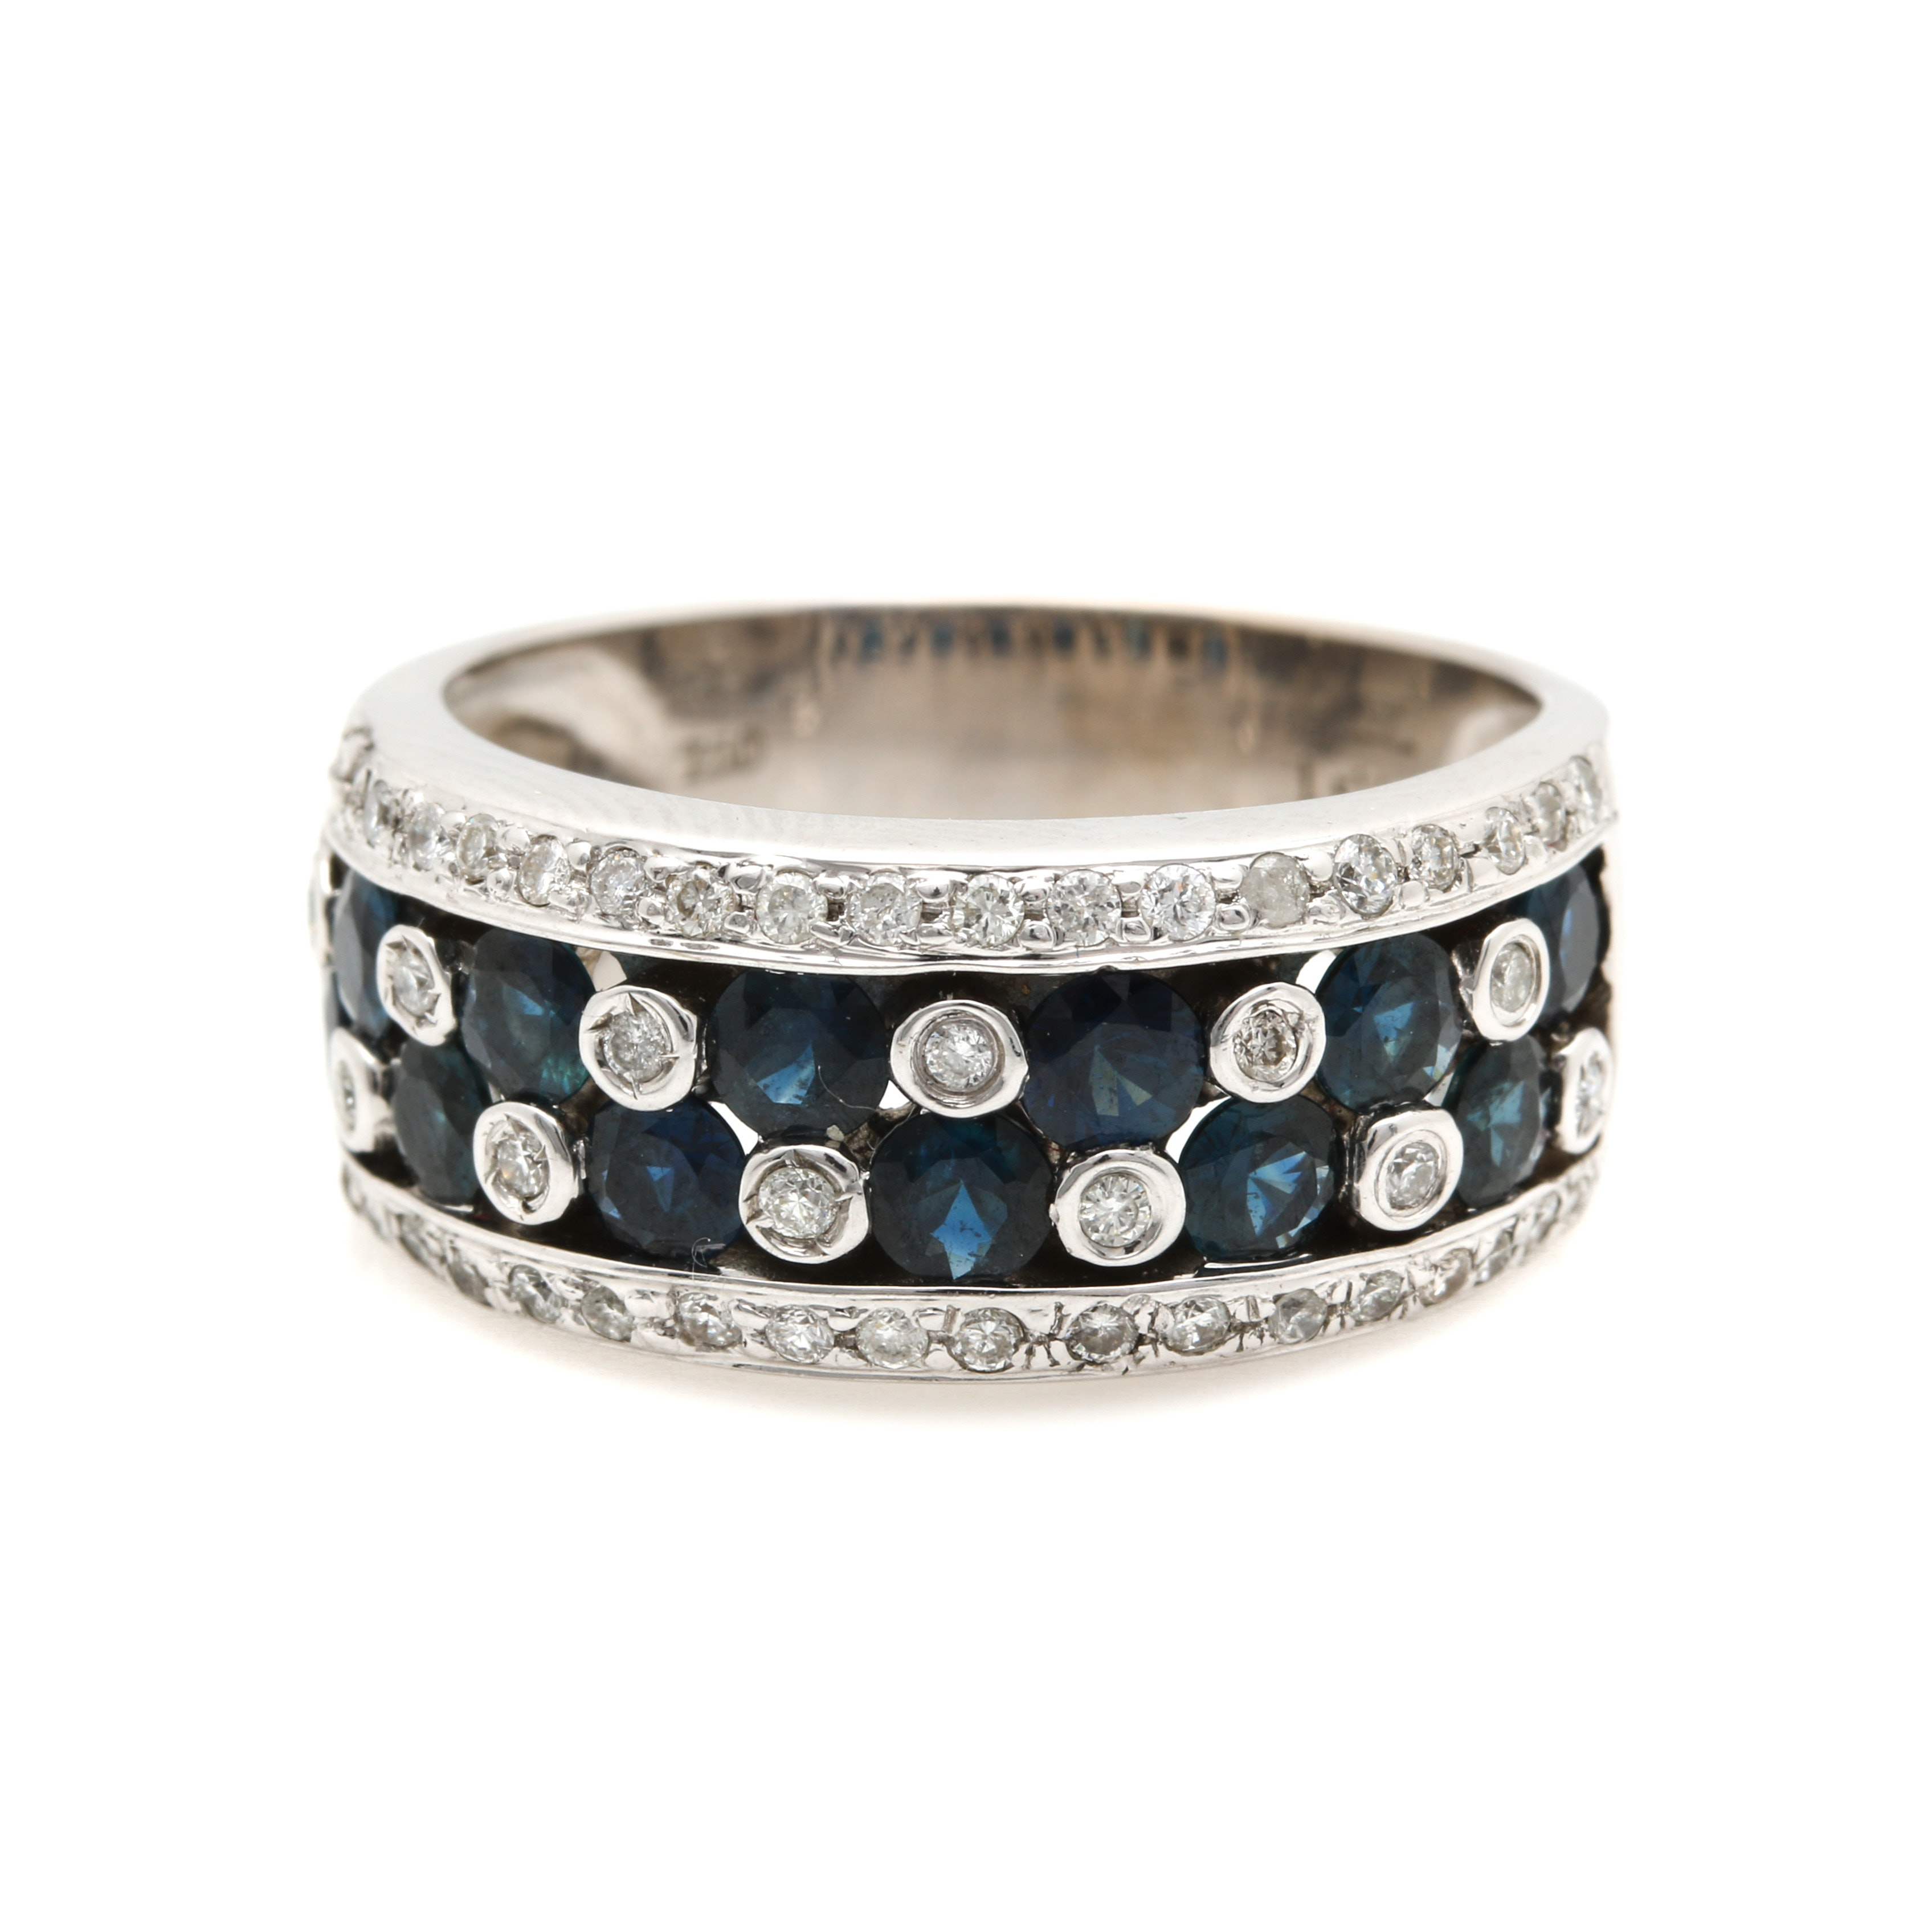 LeVian 18K White Gold Sapphire and Diamond Ring